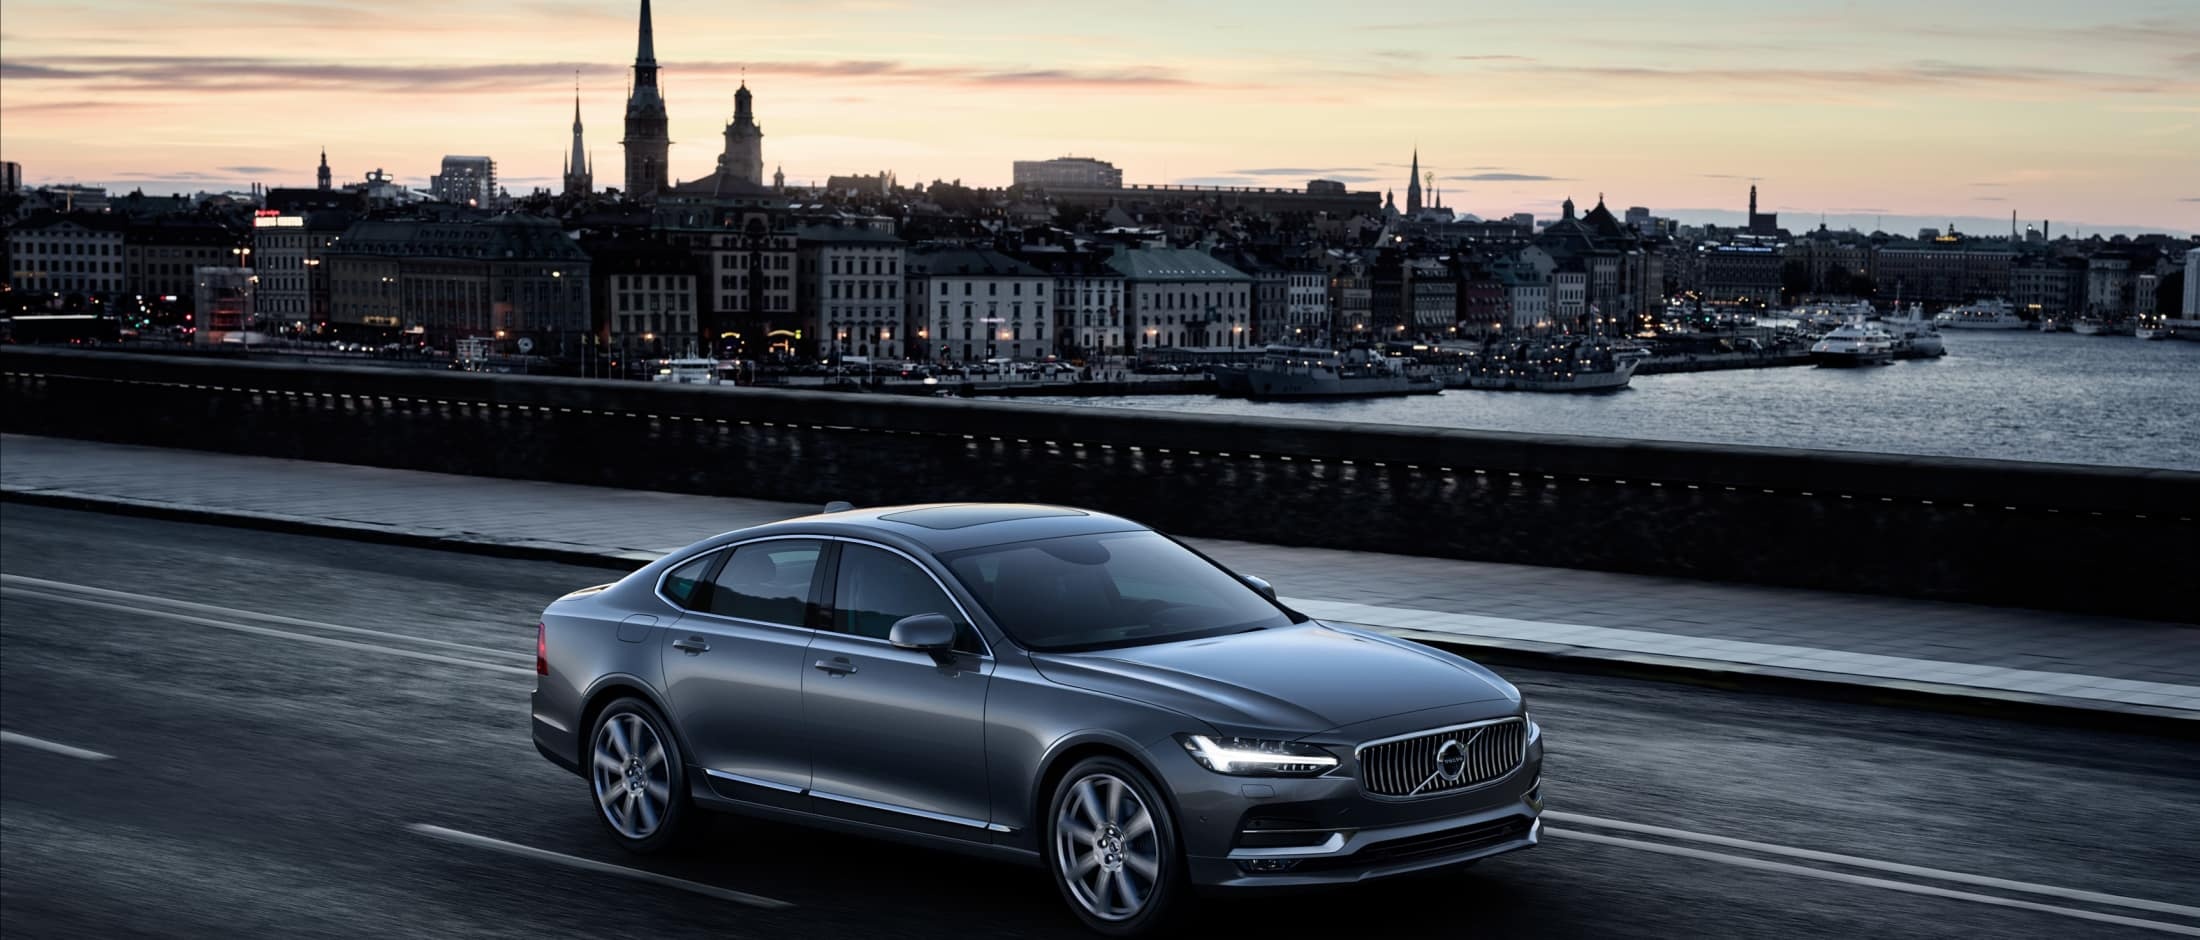 Volvo S90 Inscription i fargen Mussel Blue kjører over en bro i Stockholm